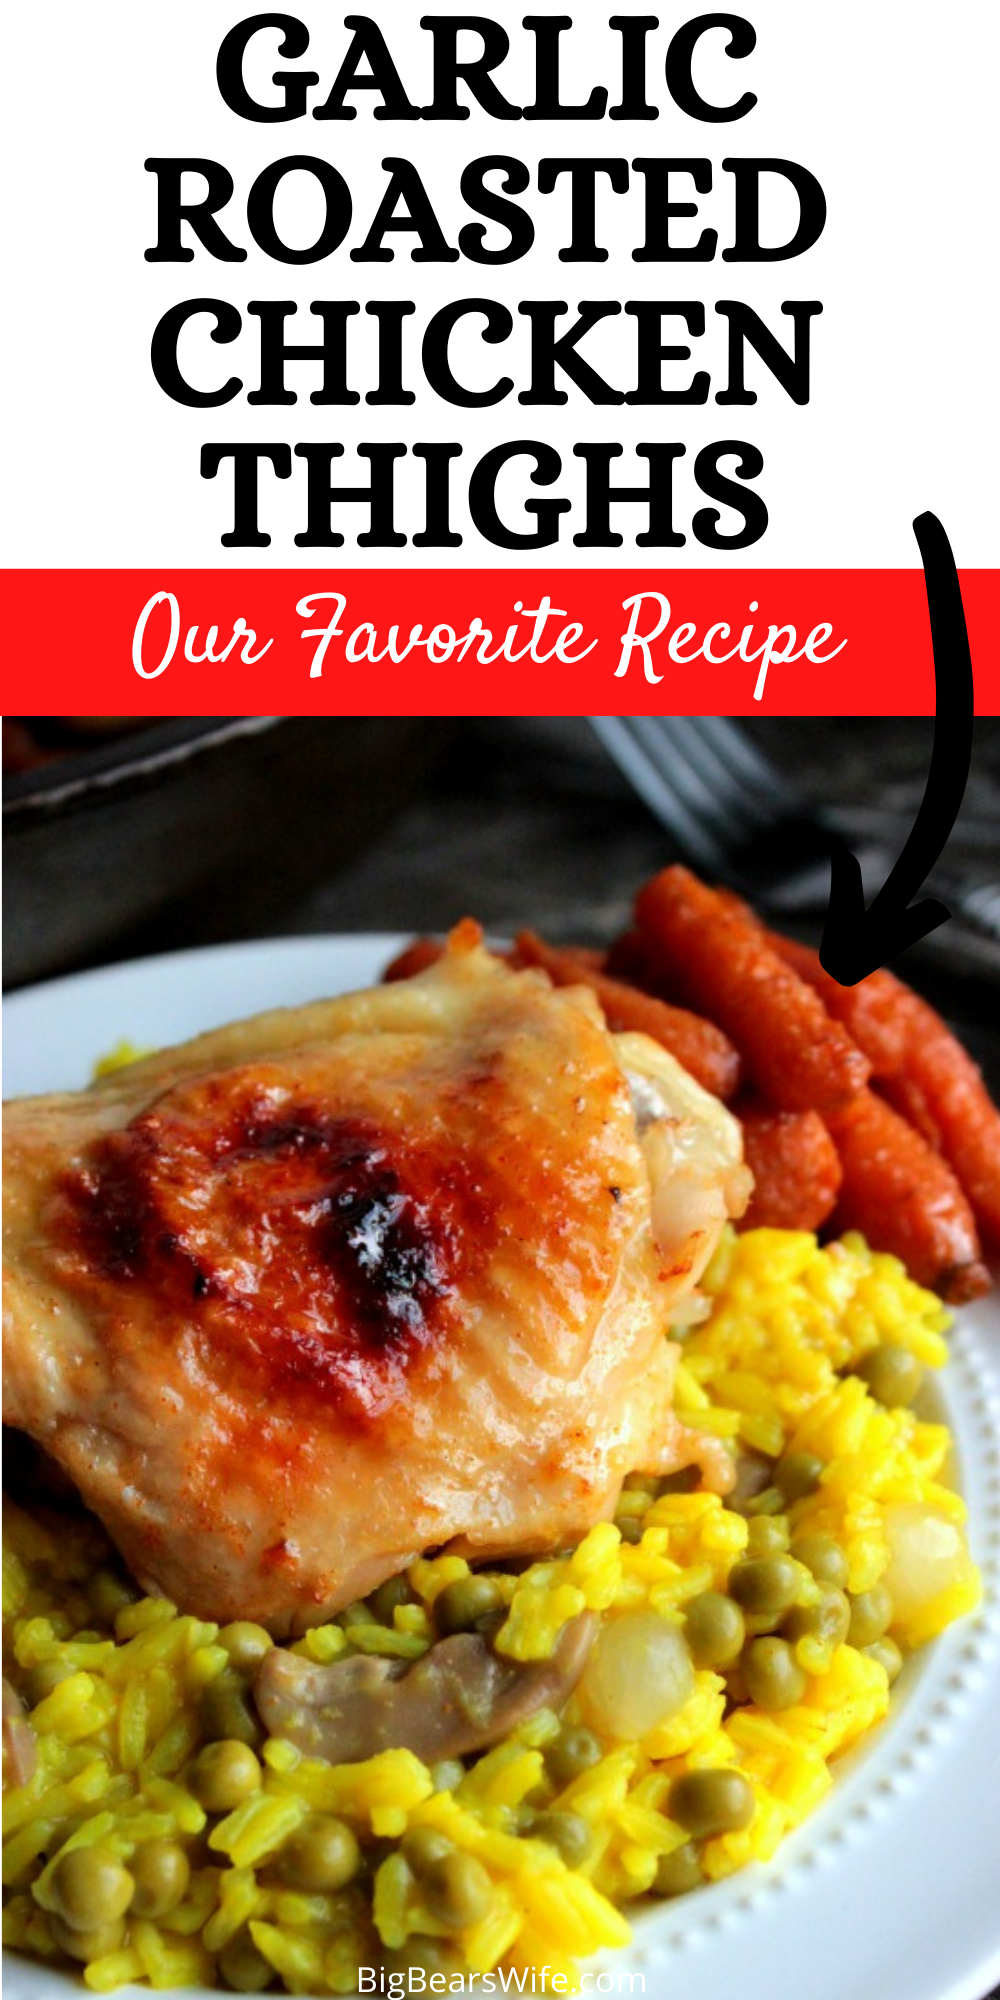 These Garlic Roasted Chicken Thighs are rubbed with minced garlic, cooked low and slow for the juiciest chicken thighs you've ever tasted! This is one of the best chicken thigh recipes that I make for our family.   via @bigbearswife